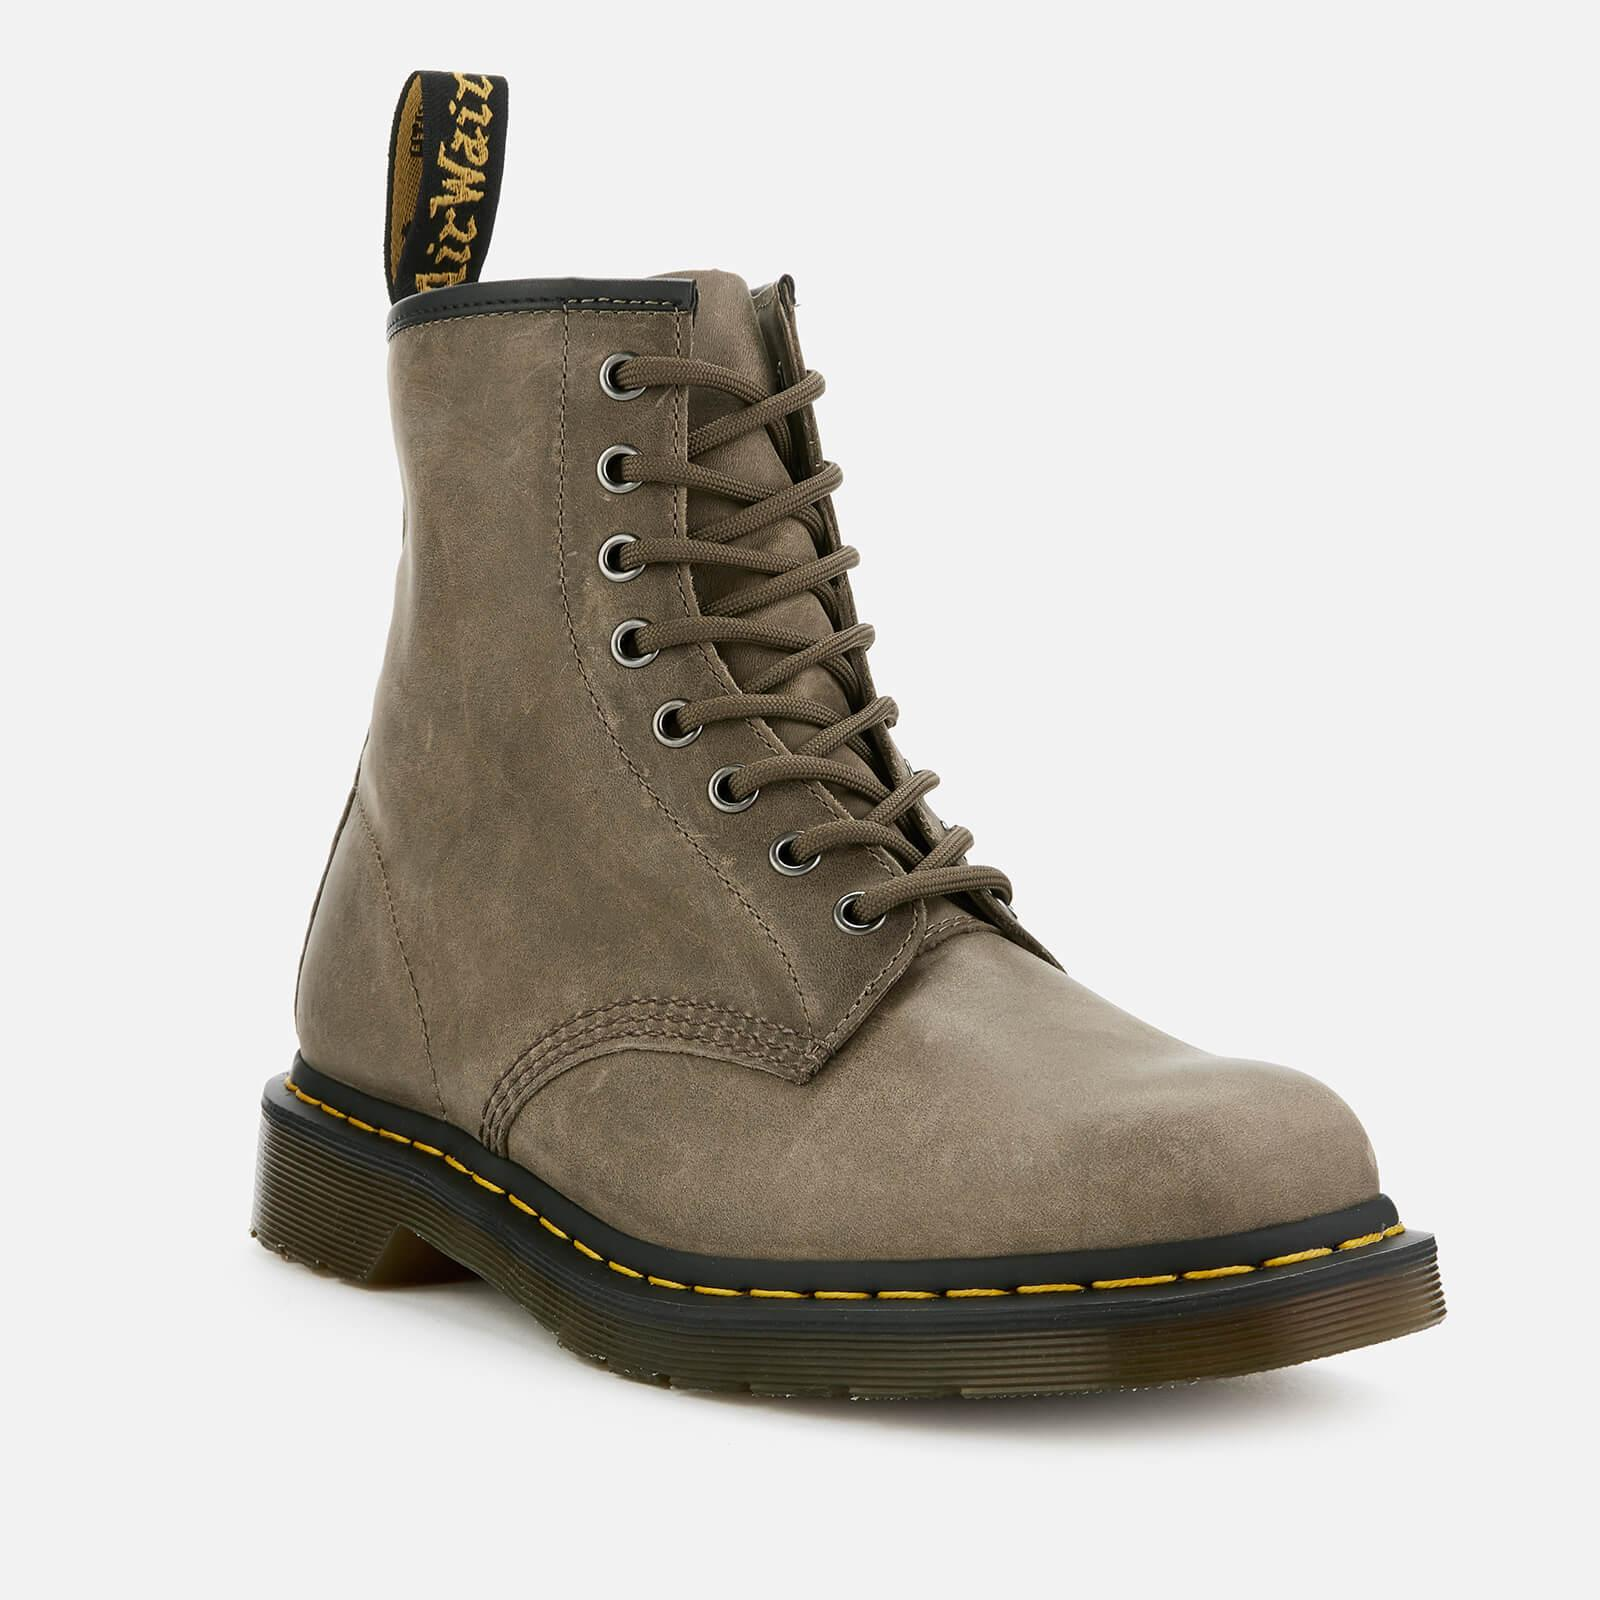 8f04eafa54c5f2 Lyst - Dr. Martens 1460 Dusky Leather 8-eye Boots in Gray for Men